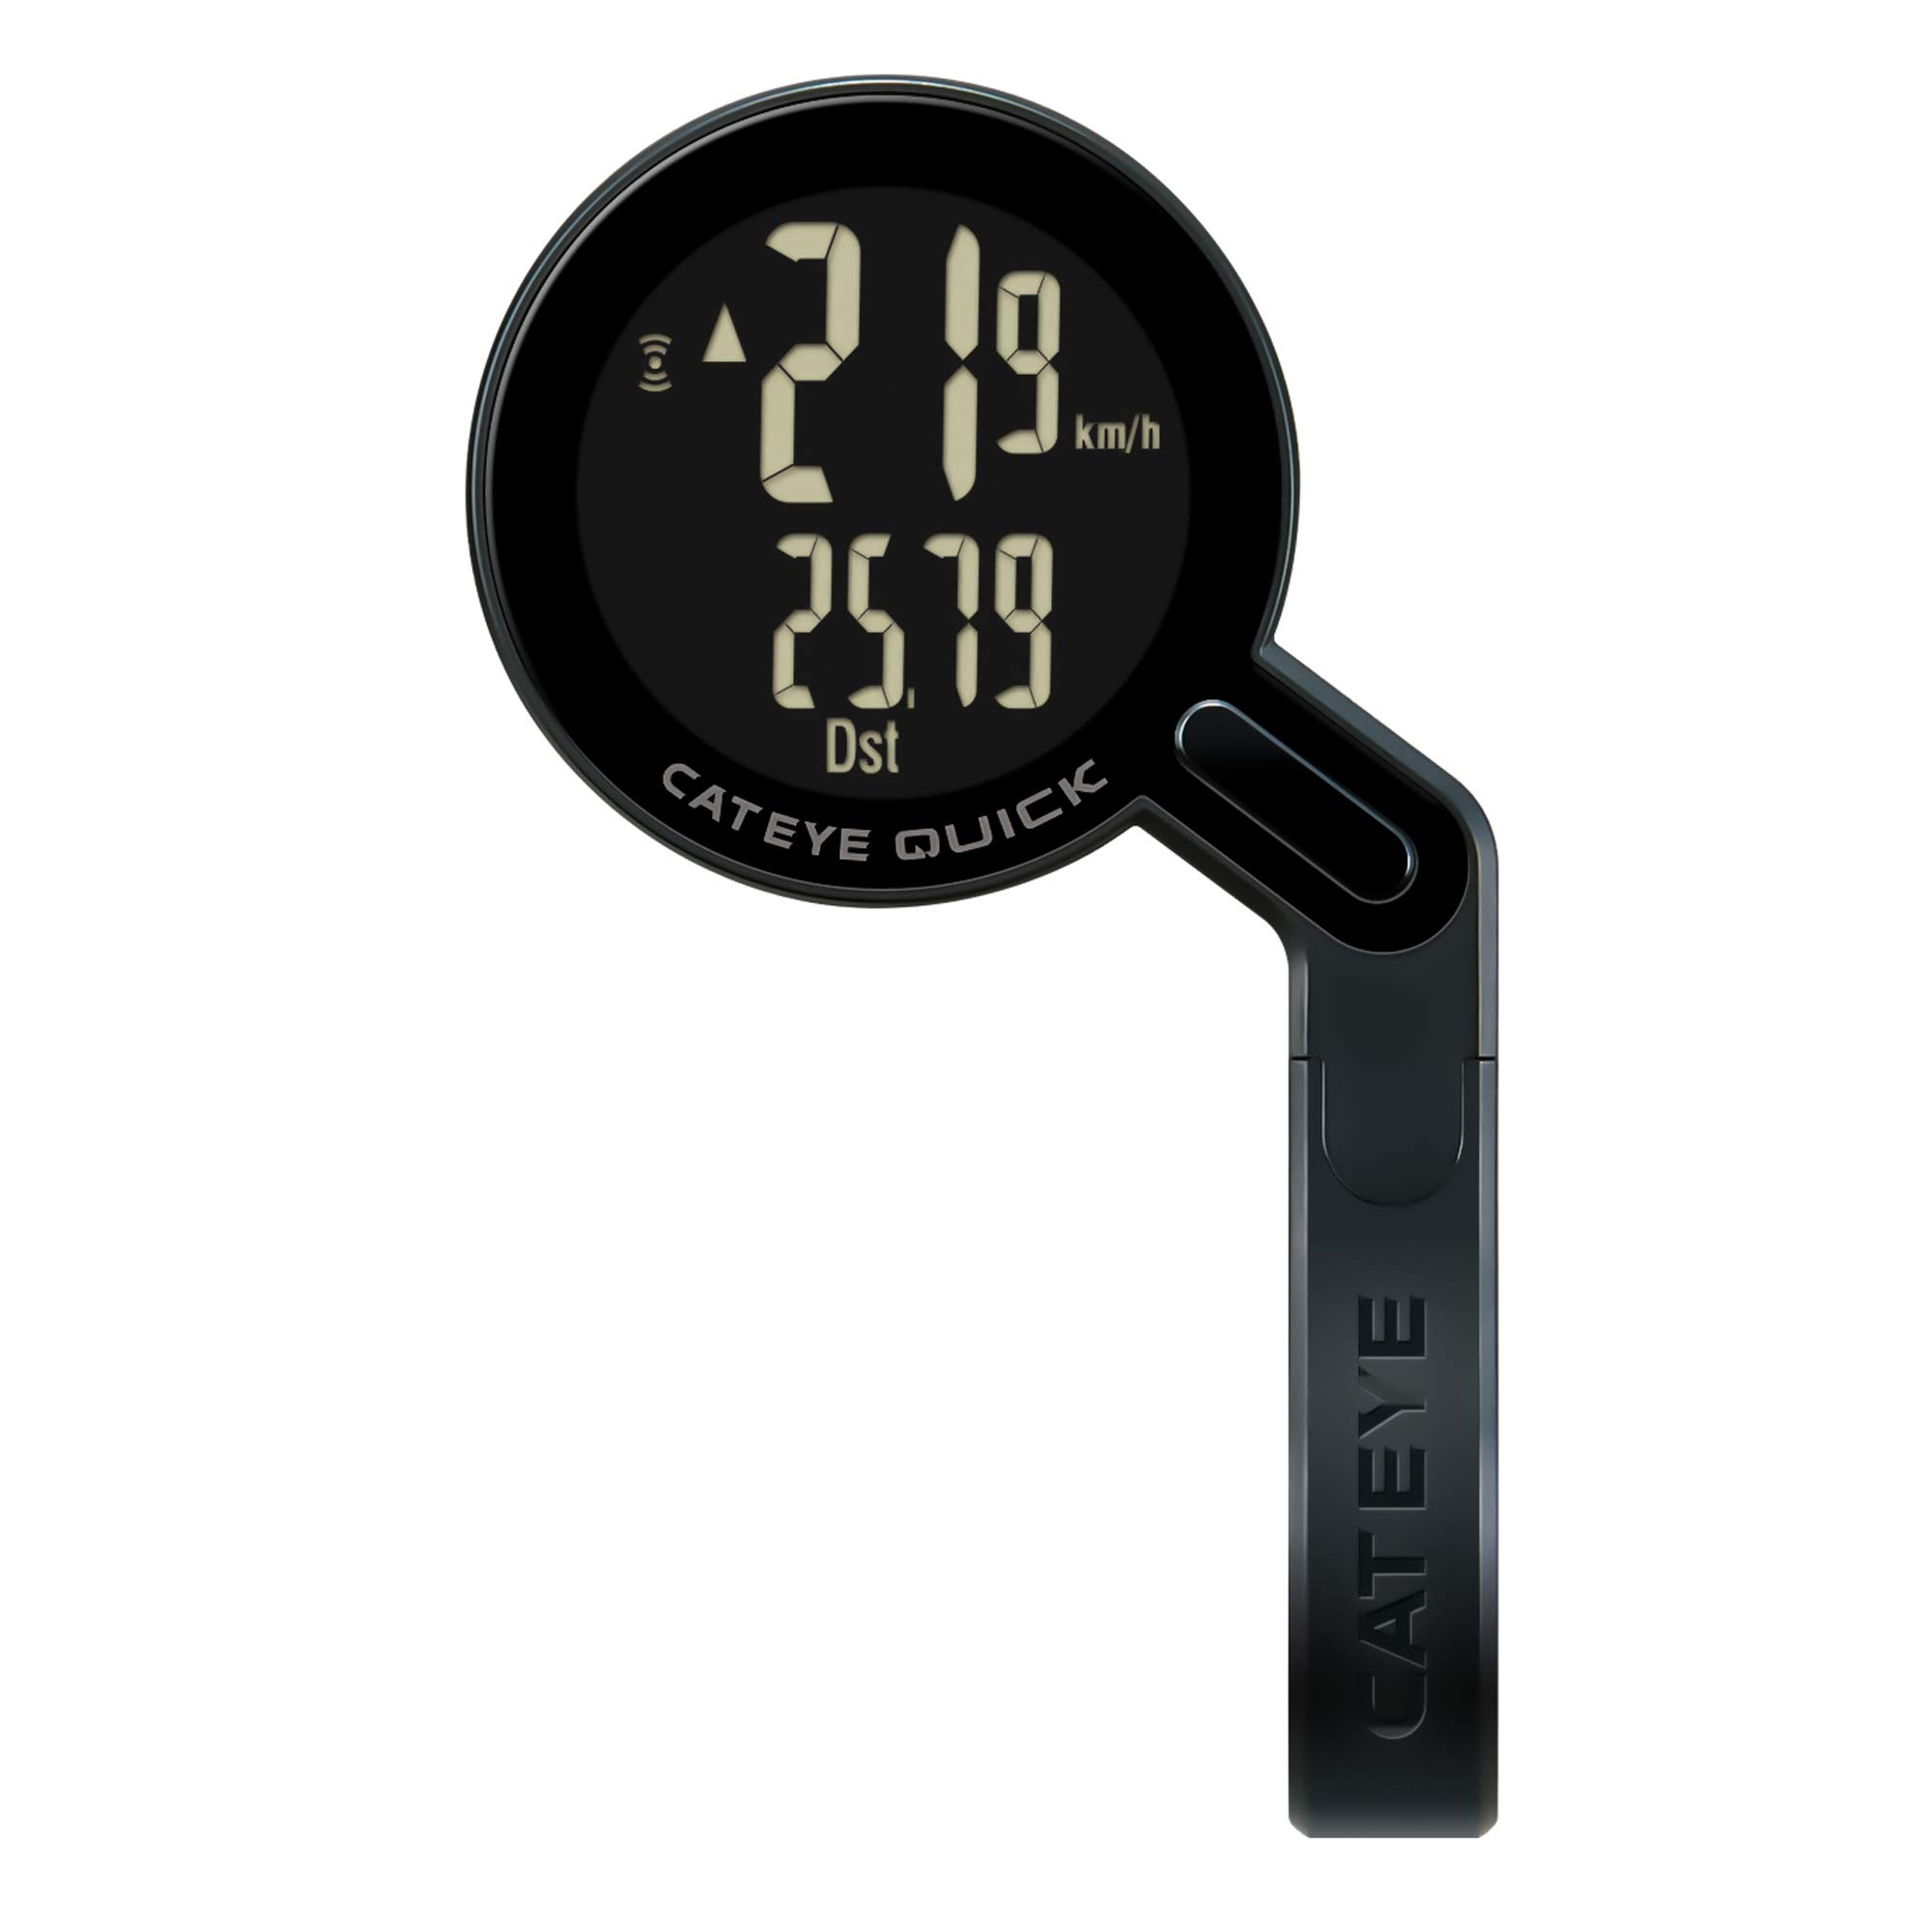 CAT EYE - Quick Bike Computer - Wireless and Waterproof - Odometer and Speedometer - Road Cycling and Commuting